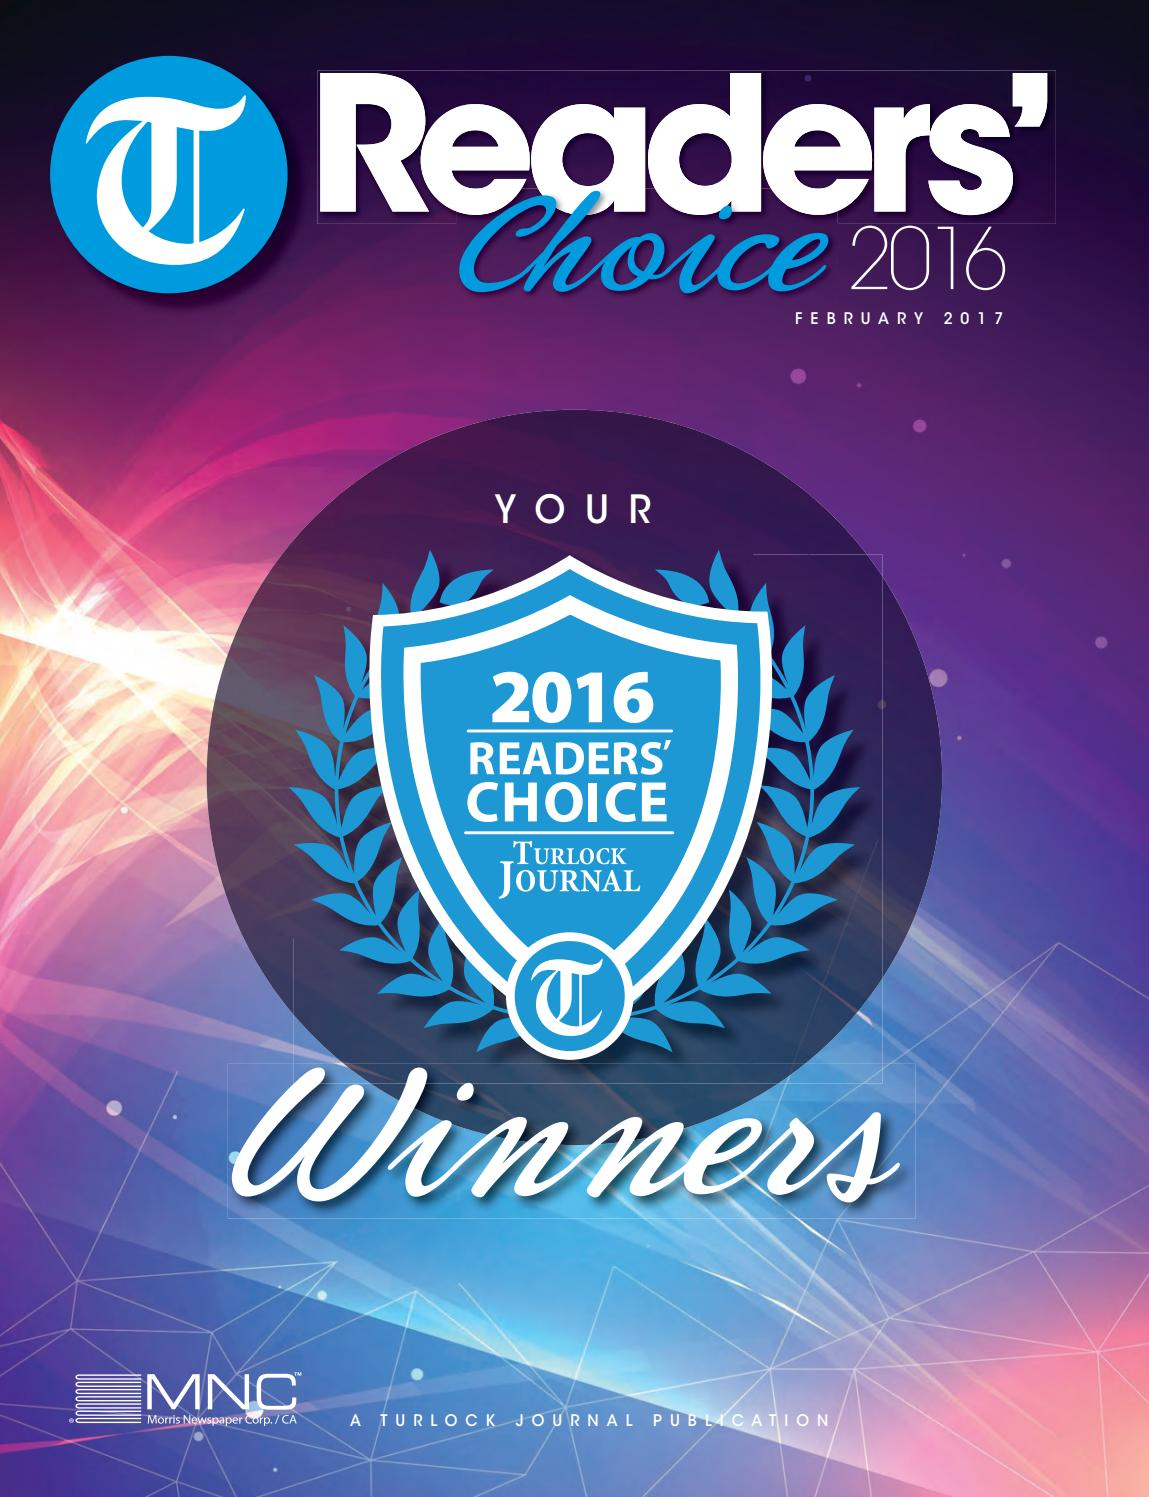 Tj Readers Choice 2016 By Mnc